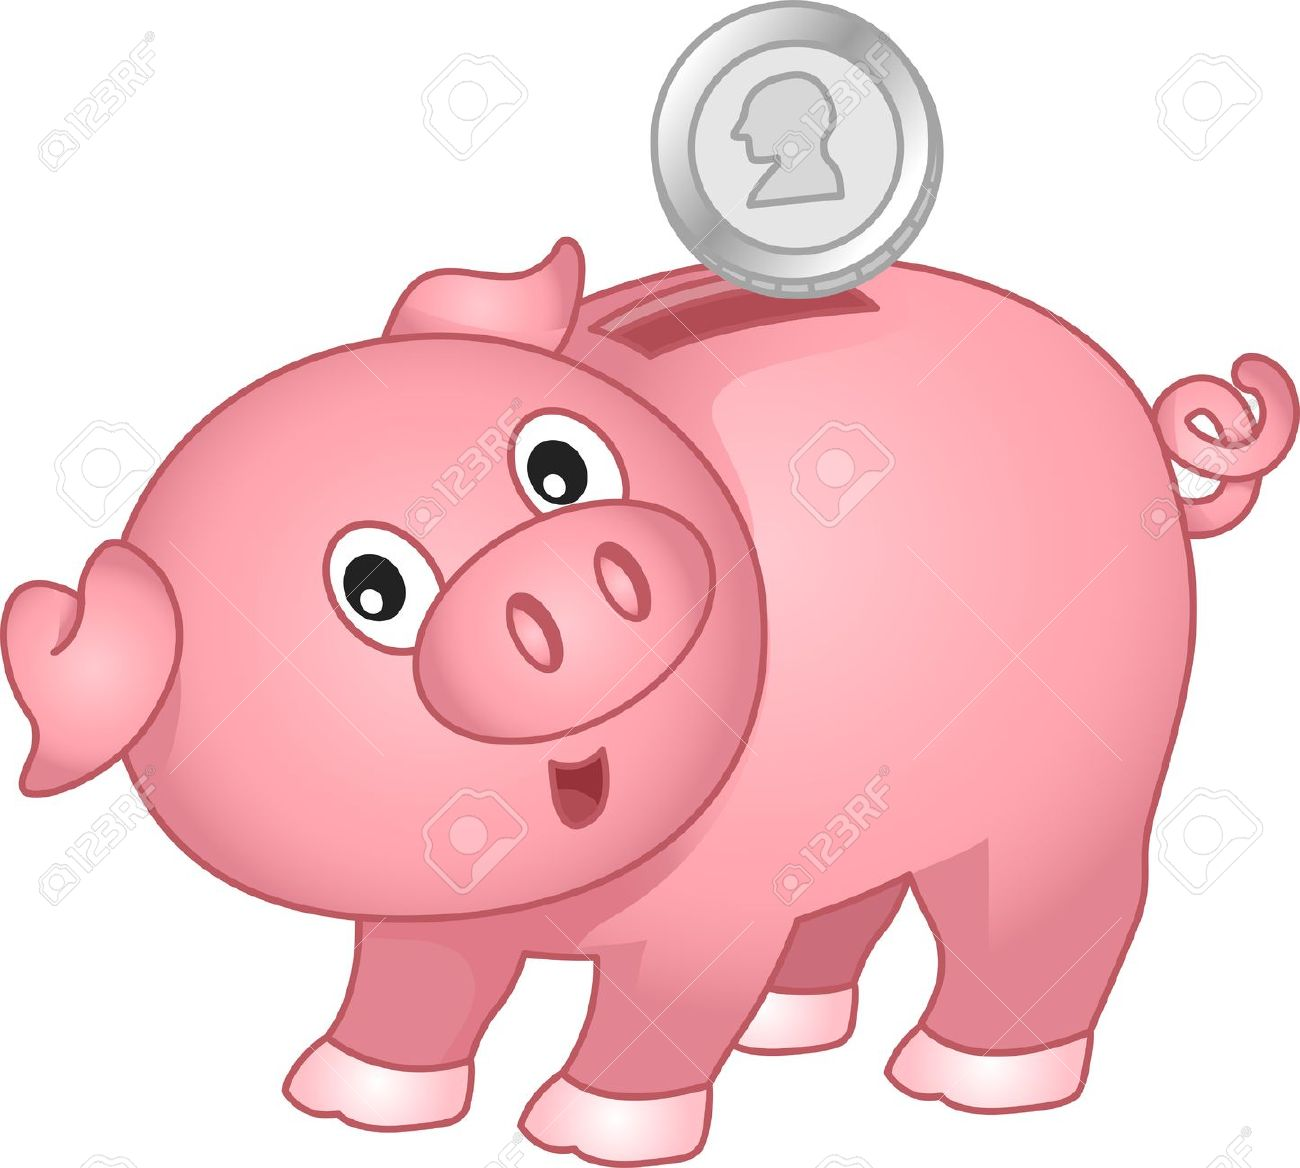 Illustration Of A Piggy Bank .-Illustration of a Piggy Bank .-4